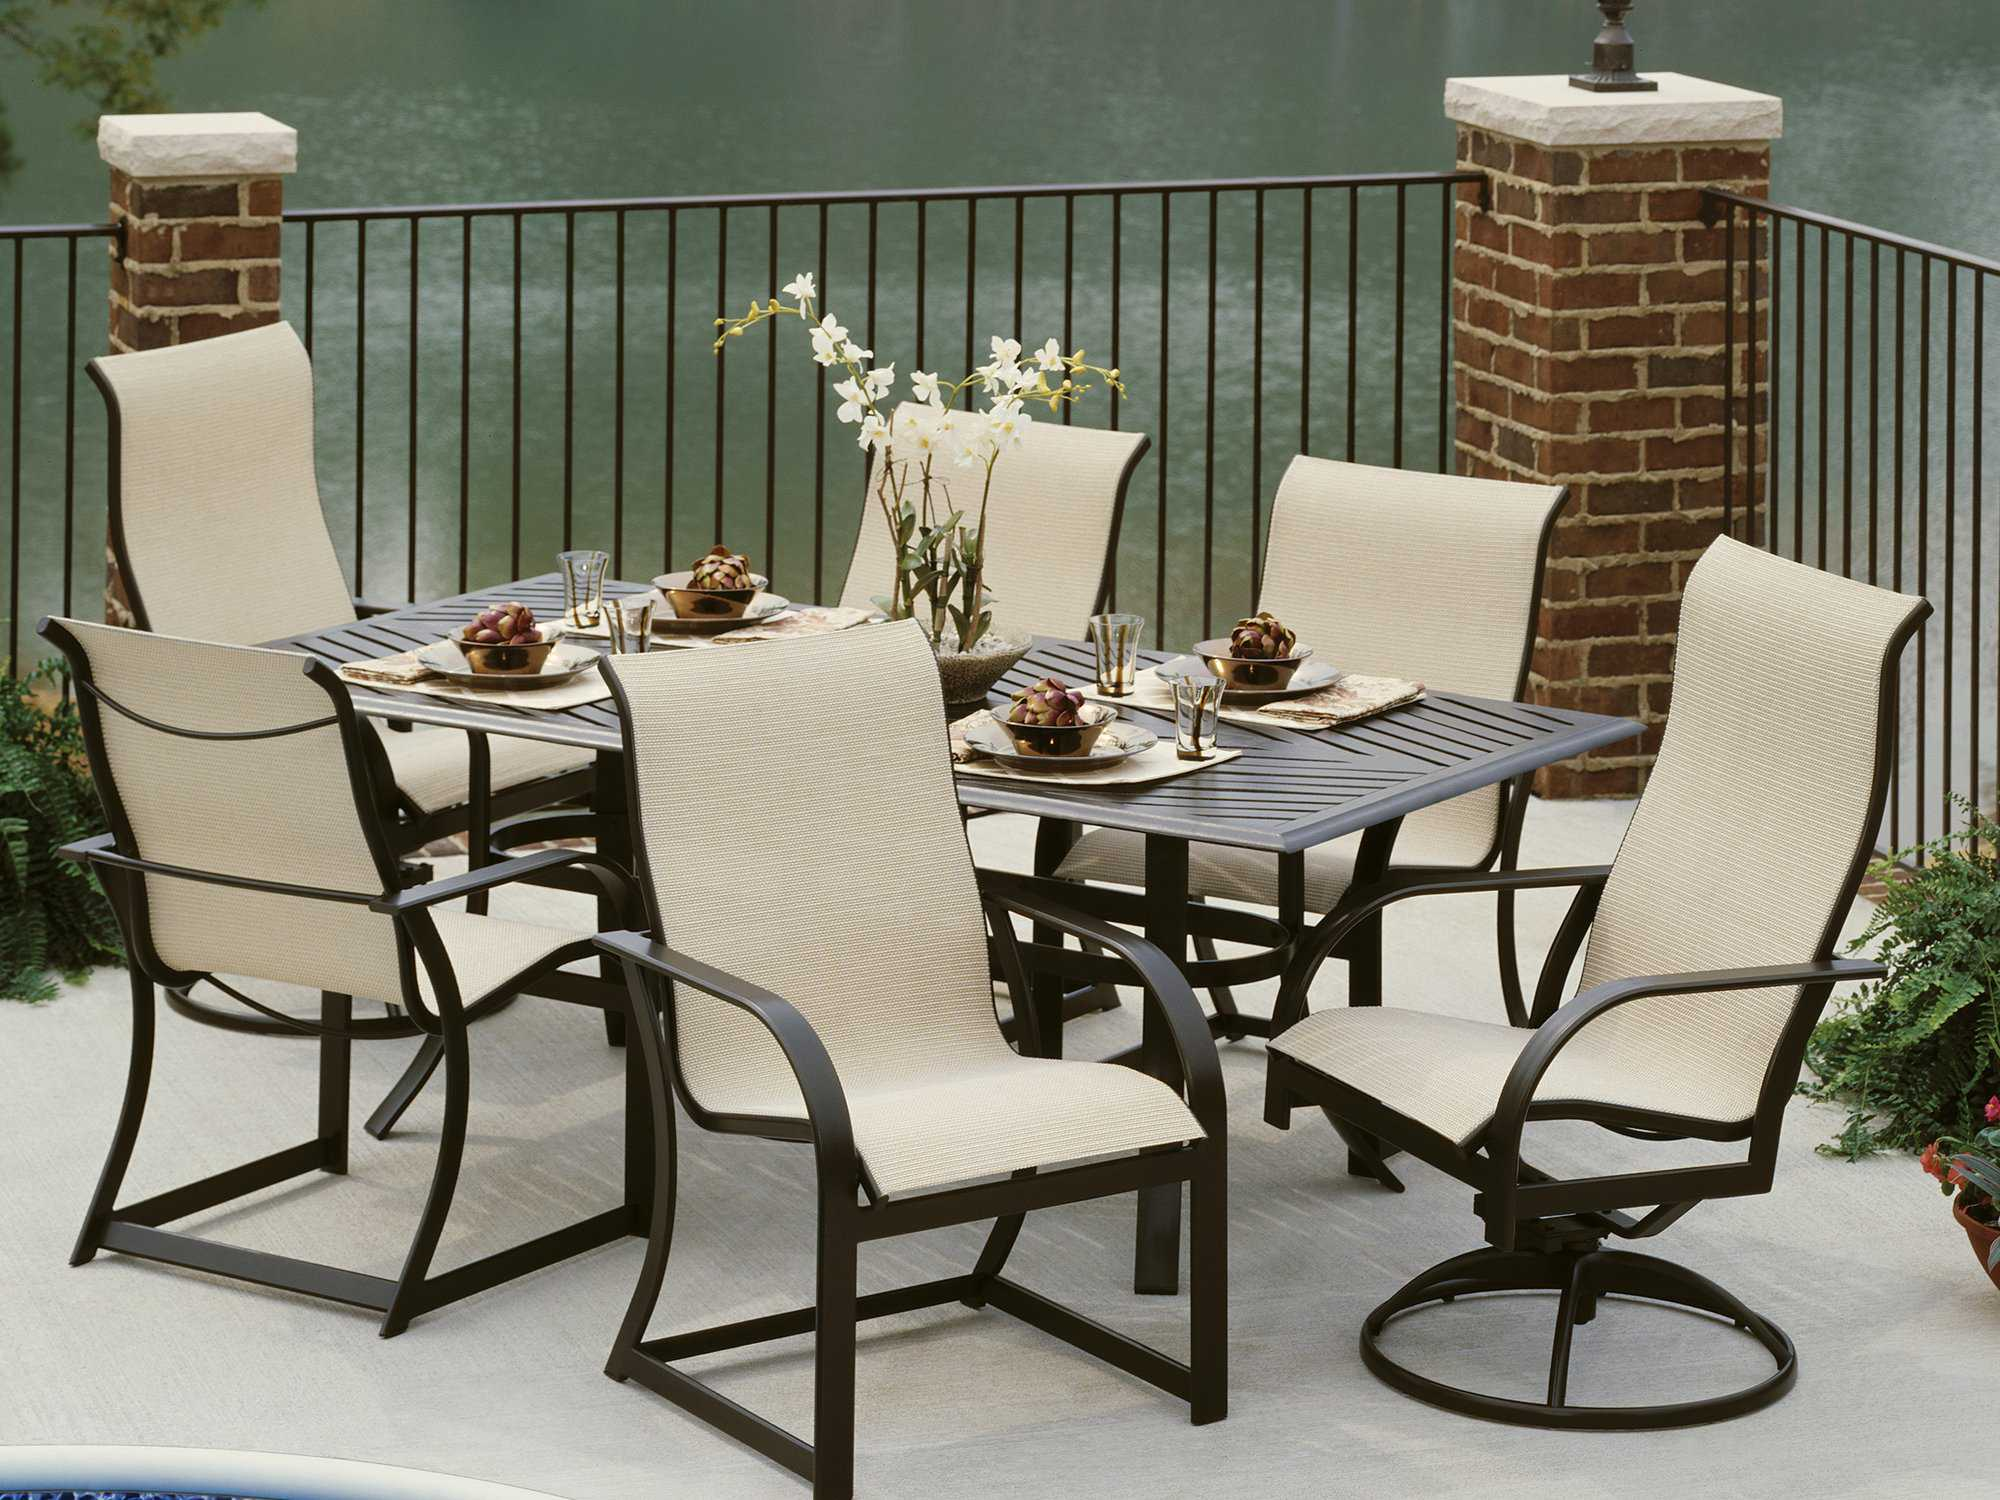 cfm hayneedle living sets belham dining master piece table weather bella product seats wicker all set patio